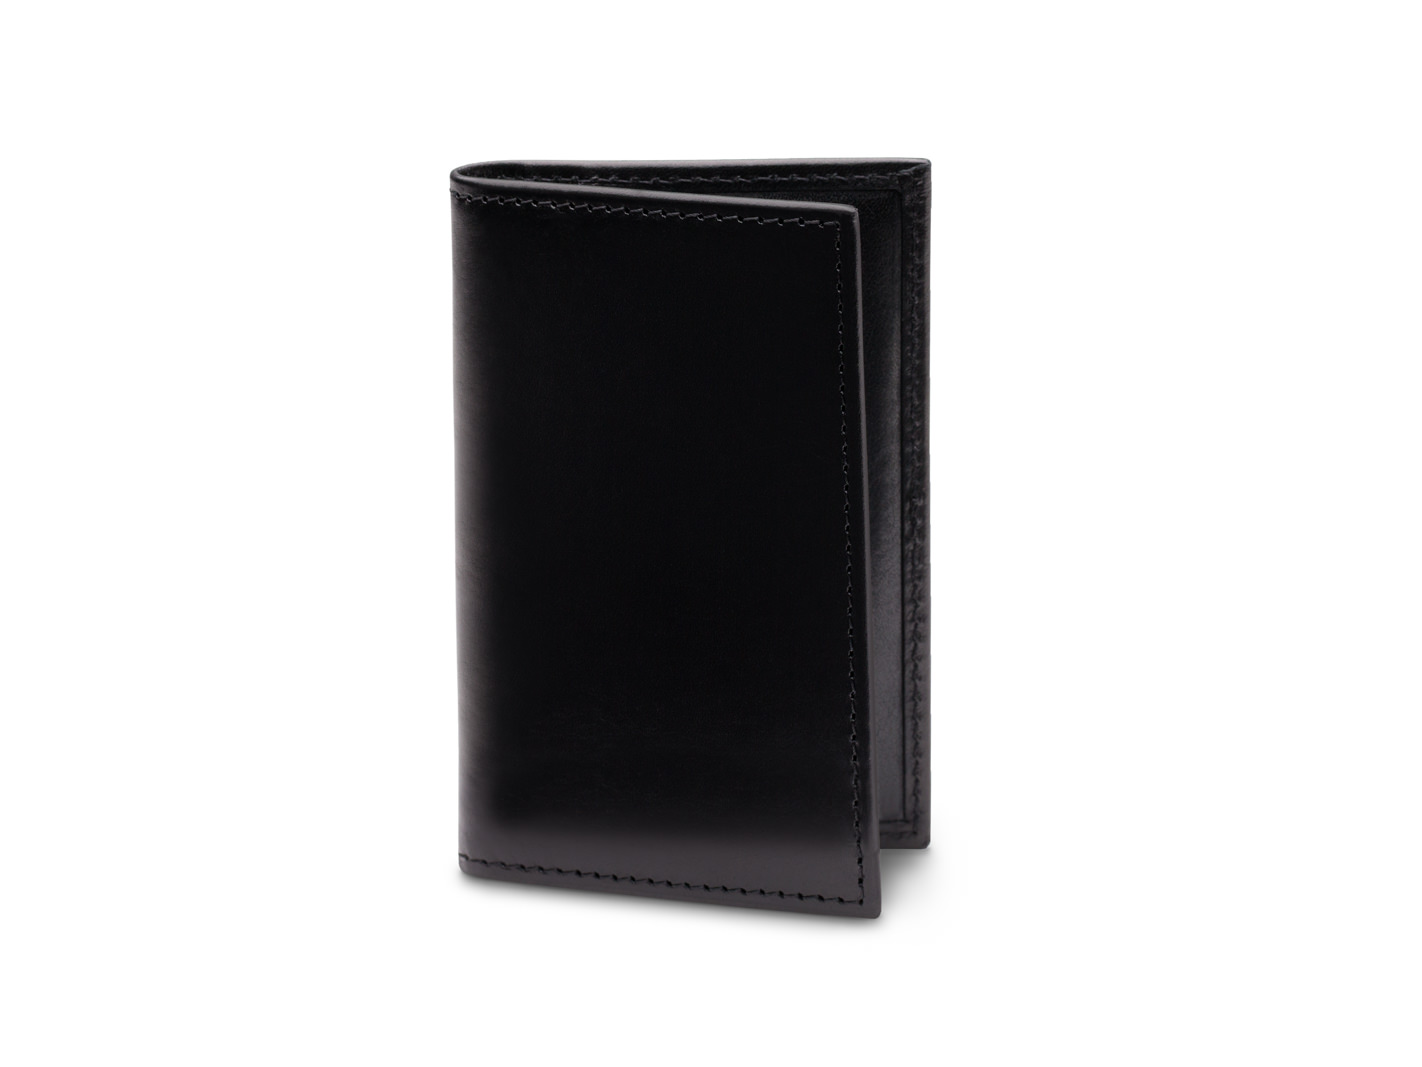 Calling Card Case - 59 Black